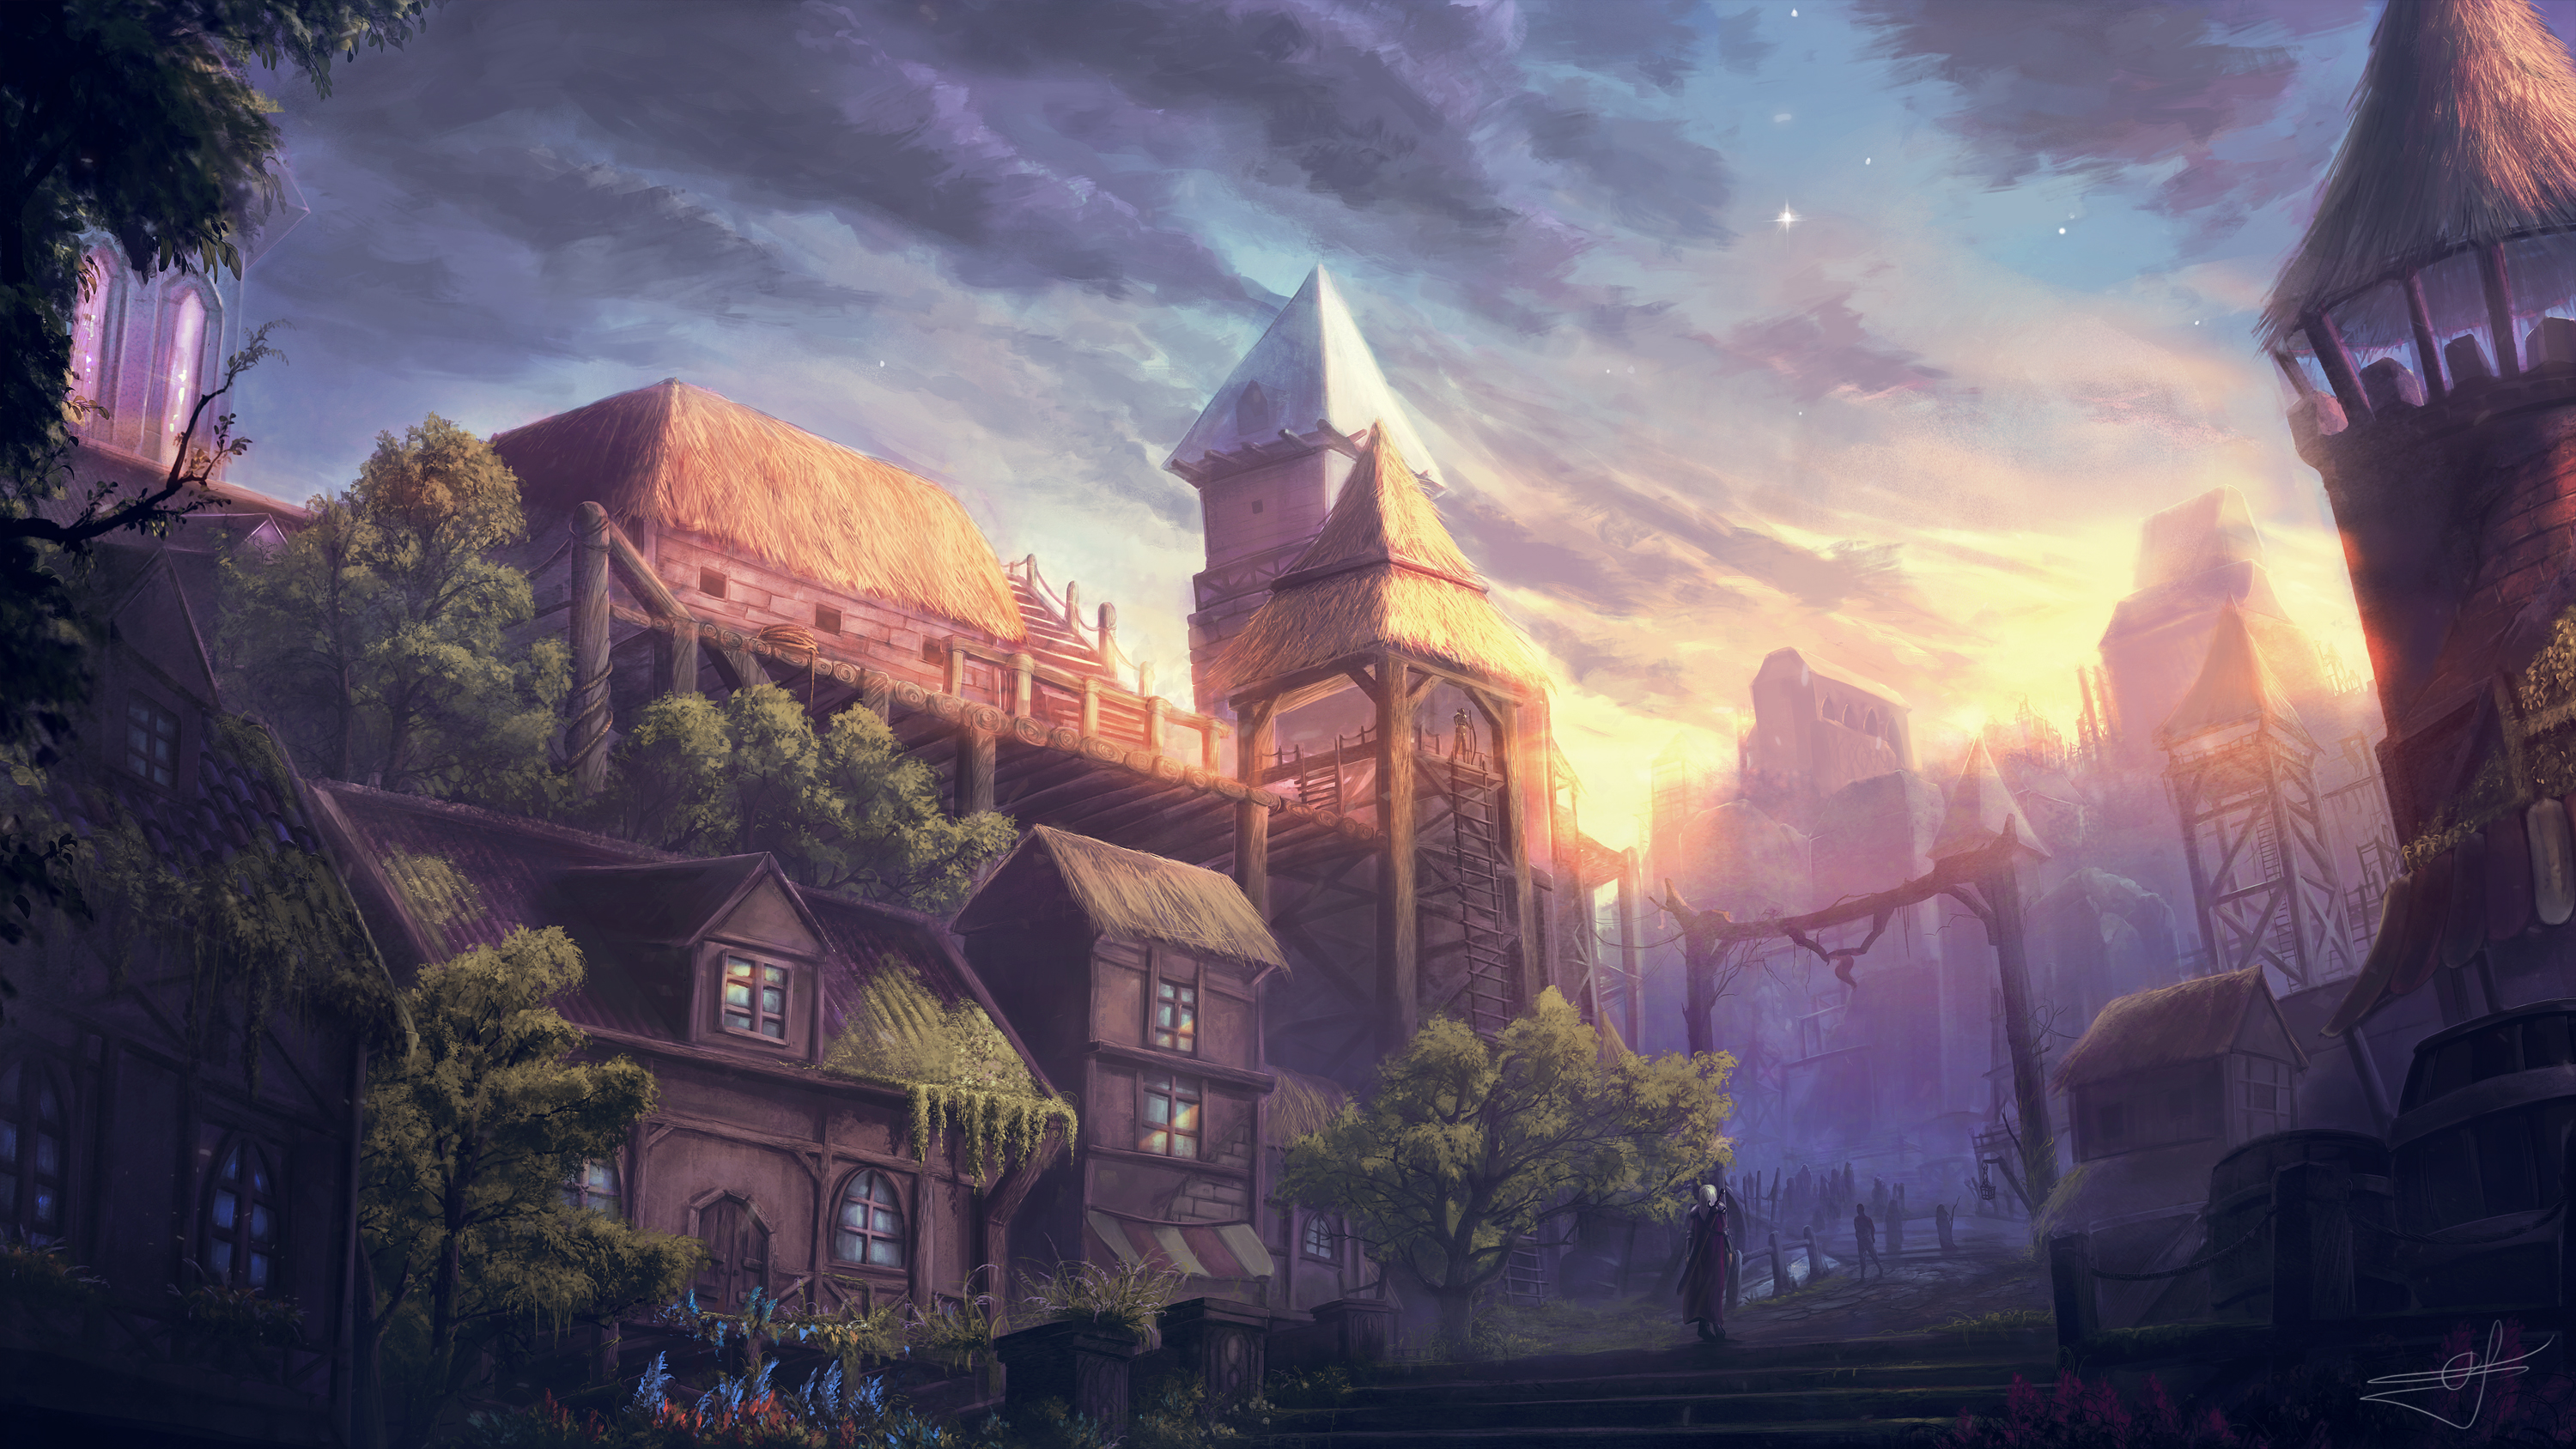 old city fantasy, hd artist, 4k wallpapers, images, backgrounds